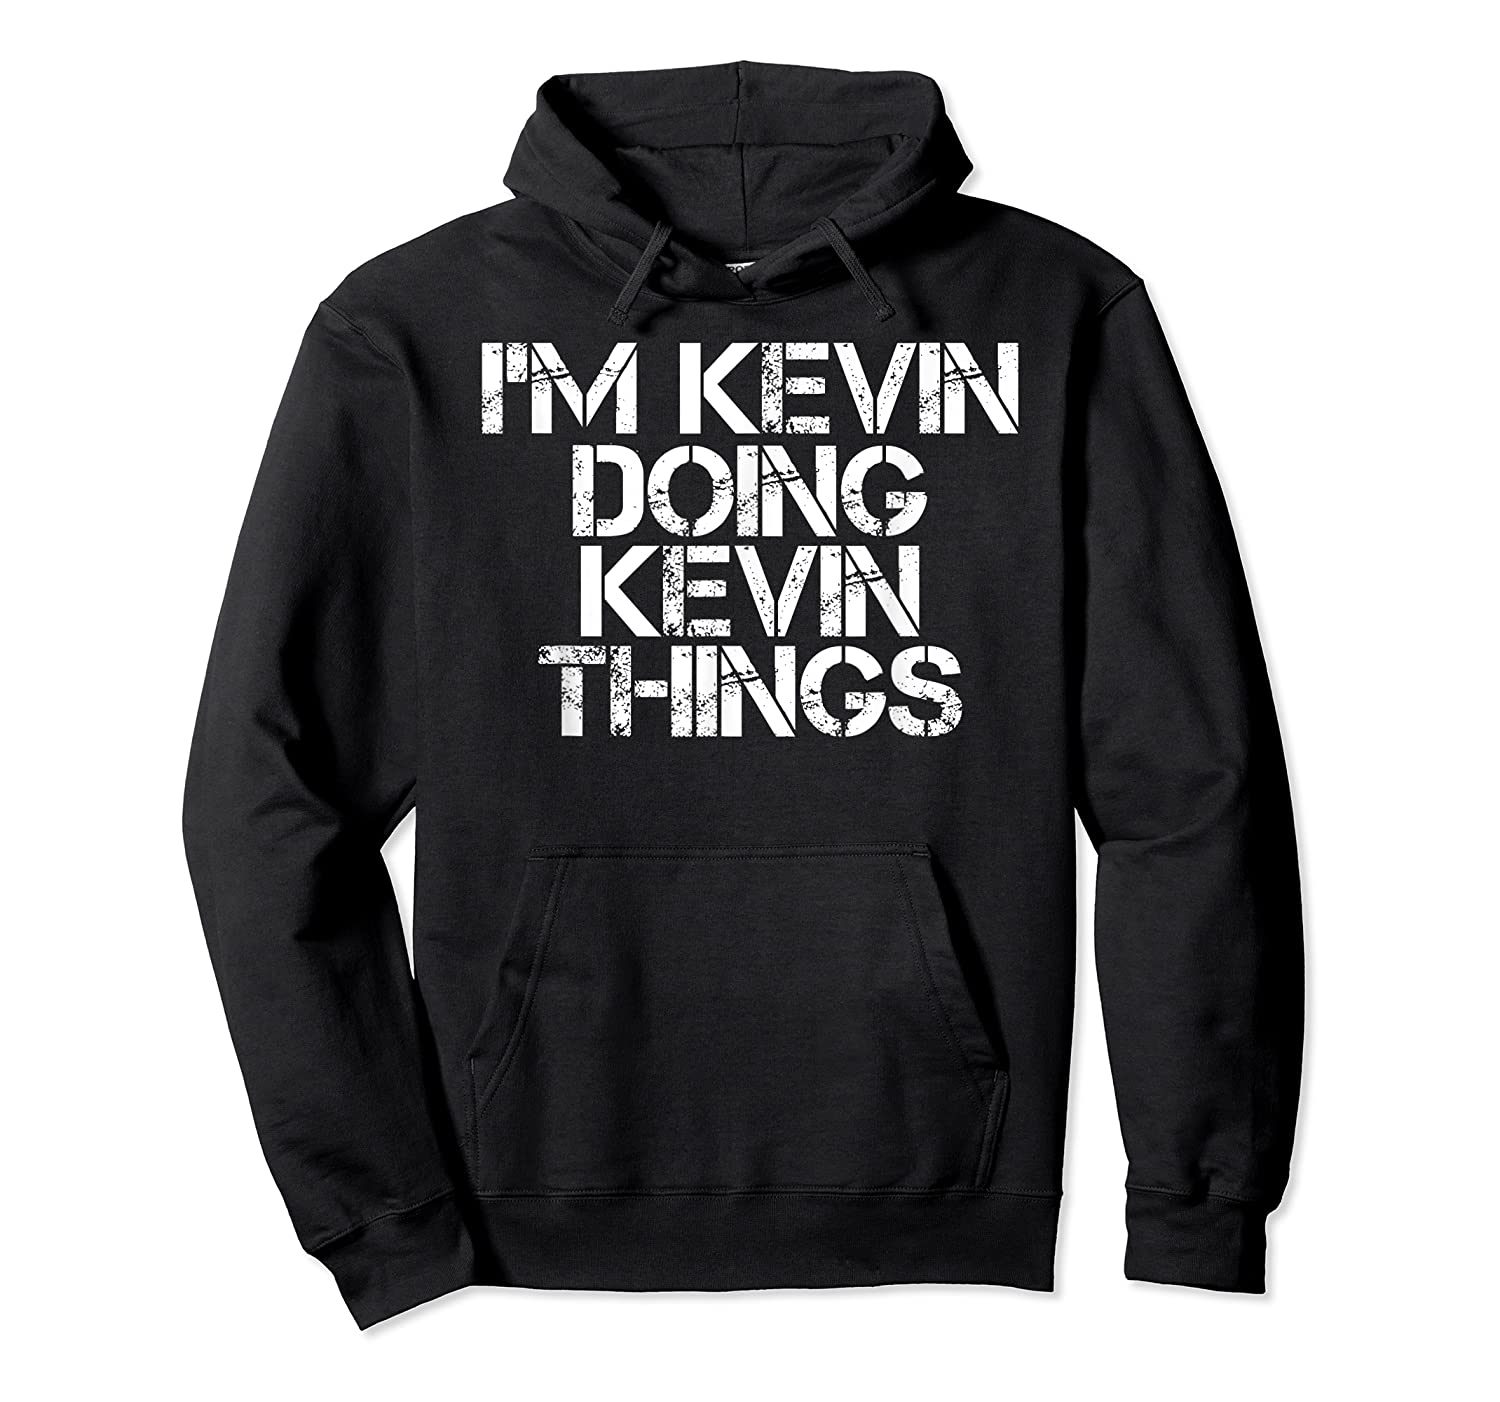 I'm Kevin Doing Kevin Things Funny Christmas Gift Idea Shirts Unisex Pullover Hoodie